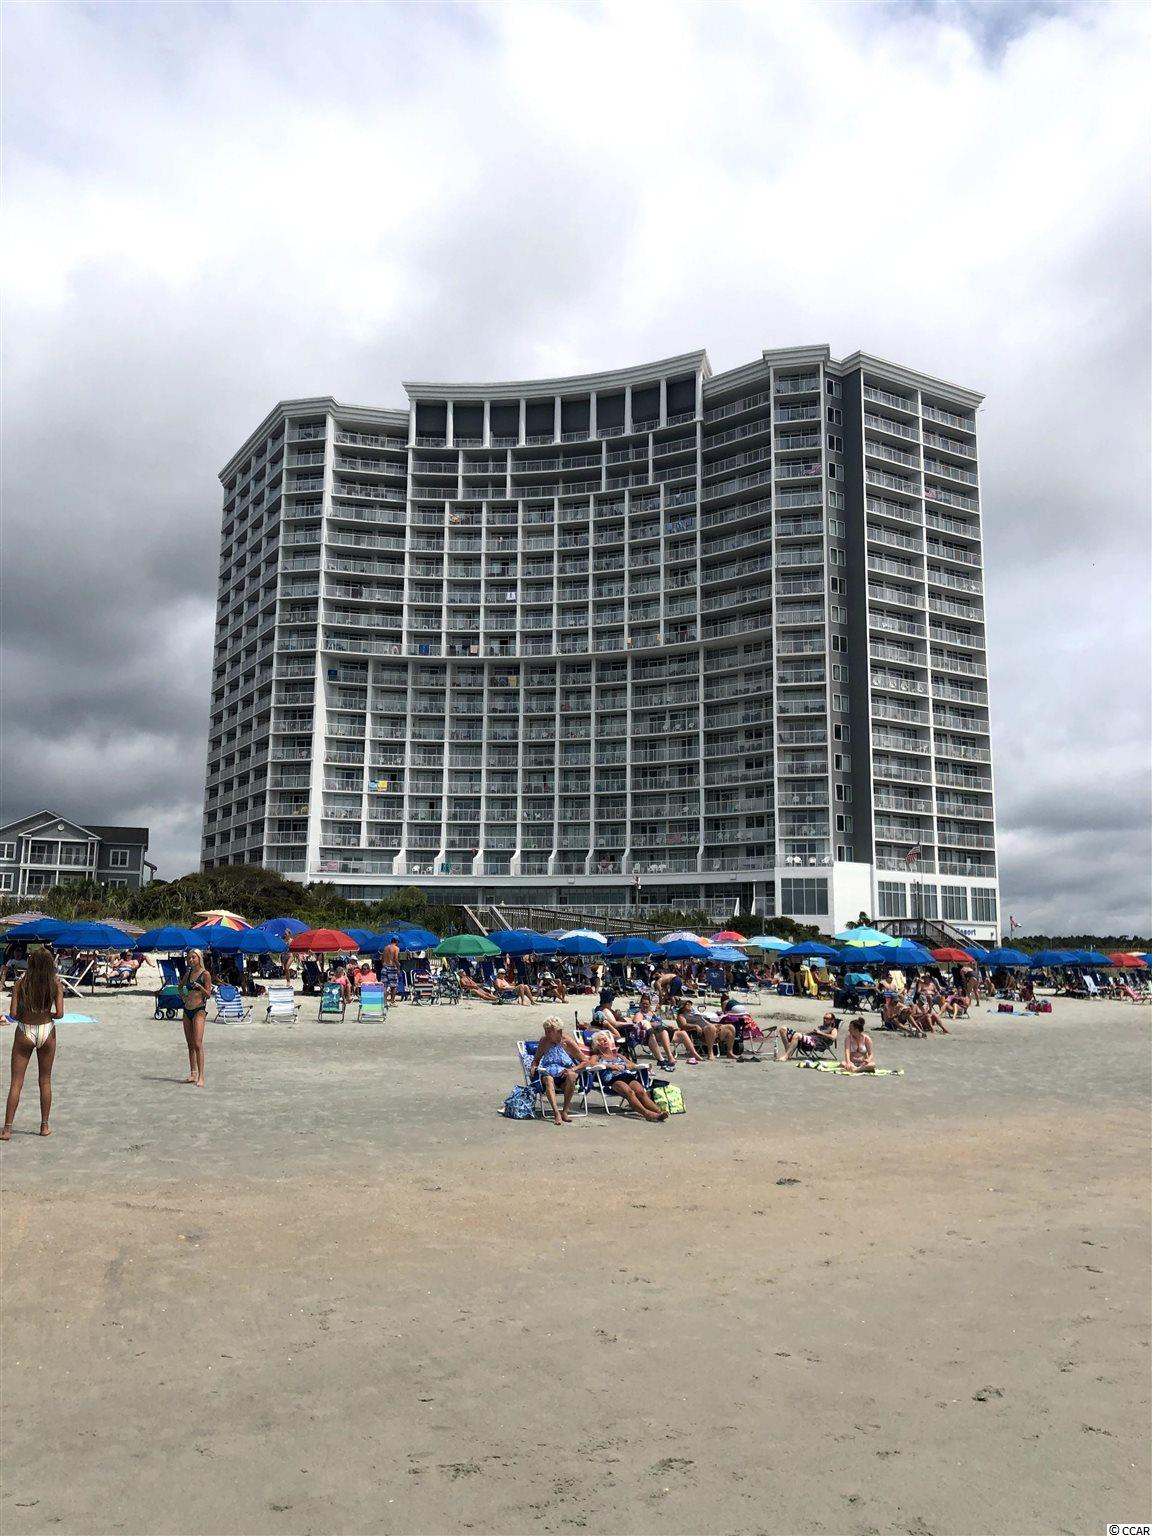 """# 1512 Seawatch N. Tower is a higher floor DIRECT OCEANFRONT 1 BR / 1 BA fully furnished and turn-key condo.  The 1 BR's on a higher floor in the building are LARGER than the 1 BR's on the lower floors.    This upgraded condo is a """"Premier"""" condo on the onsite rental program.   Also, this condo has a rare KING BED in the bedroom instead of the standard 2 double beds (king bed condos typically rent for more money than the 2 double beds).    This gorgeous condo also features:  A renovated kitchen with granite counter tops and new cabinets; newer furniture; newer carpeting; new mattress on the murphy bed; and a New HVAC system in Nov. 2019.   There is also an owner's closet in the condo, along with a murphy bed in the living room.   And, of course, the VIEWS!  Wow!   Unobstructed Atlantic Ocean AND southern coastline views for 30+ miles will mesmerize you constantly while inside the condo or on your balcony.  Seawatch Resort features 19 different water amenities including: 6 outdoor pools (2 are covered and heated), 2 huge lazy rivers, a kiddie pool, and 10 hot tubs.  There is also an onsite breakfast restaurant, a seasonal snack bar, seasonal oceanfront tiki bar, a gift shop, a fire pit, a playground, an arcade, fitness center, and banquet facilities.  With excellent rental income and an amazing 10 acre resort, # 1512 Seawatch N. Tower is an ideal 2nd home or rental income producing property."""